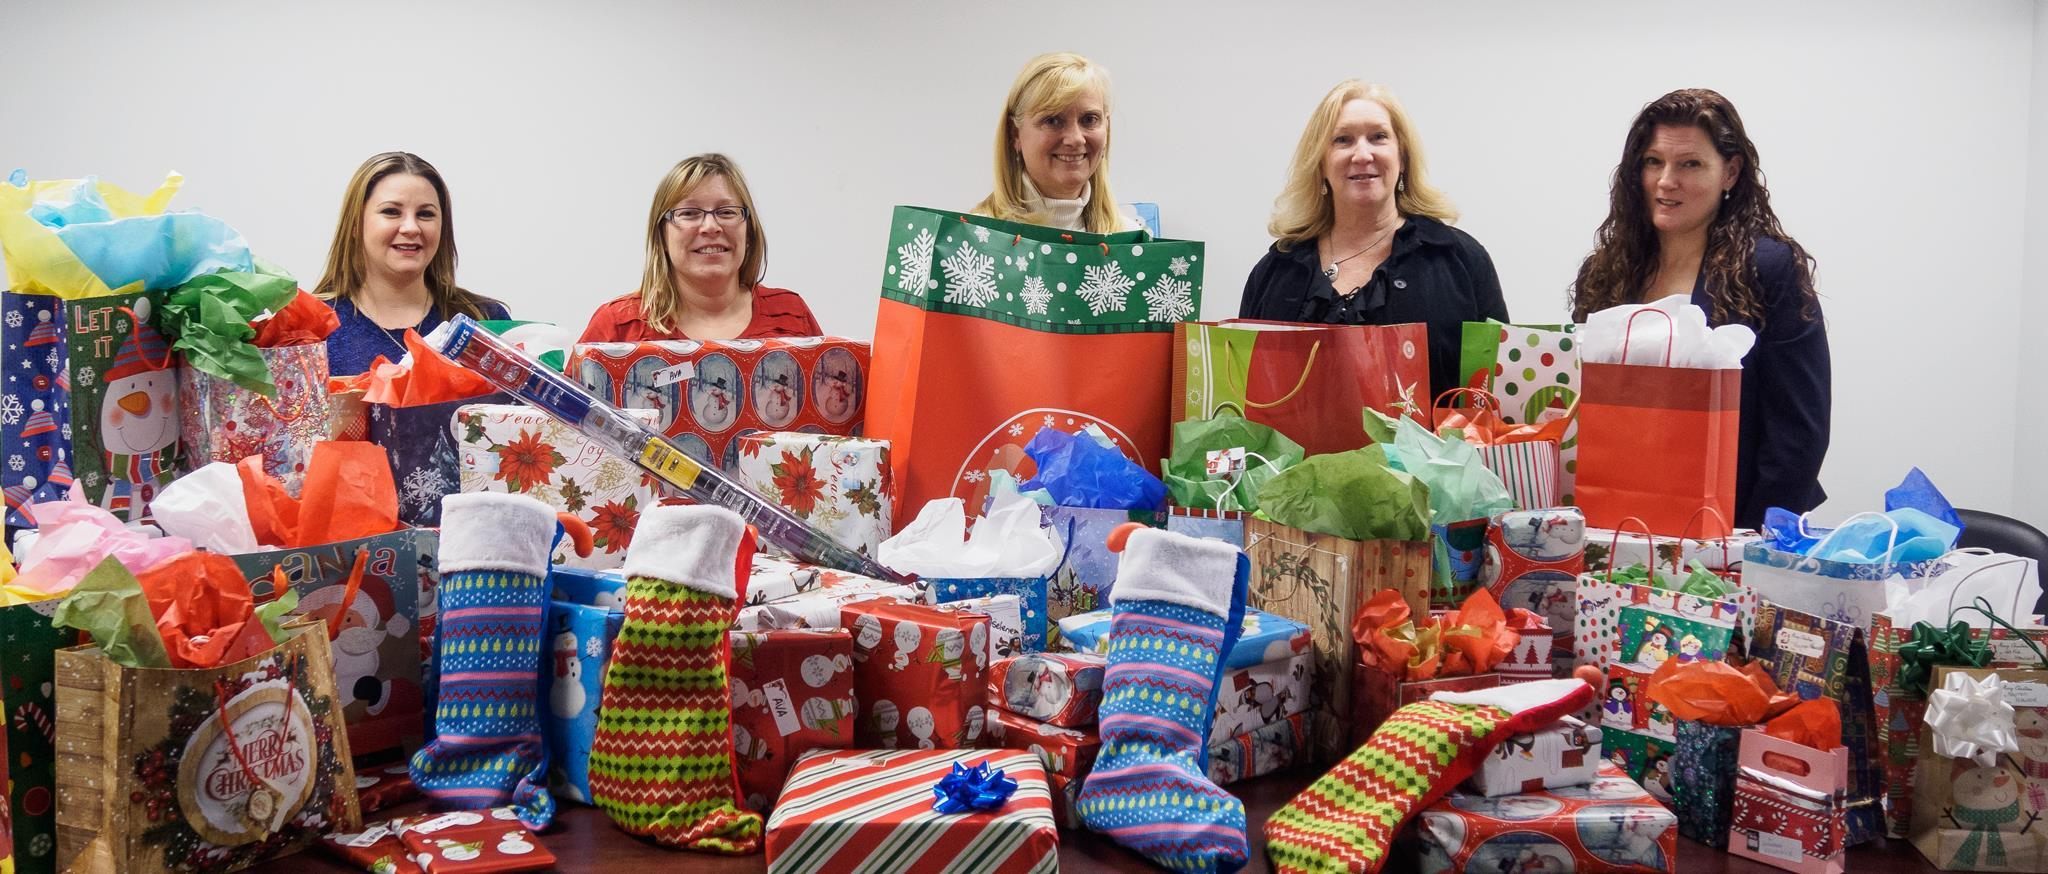 Holiday gift donations